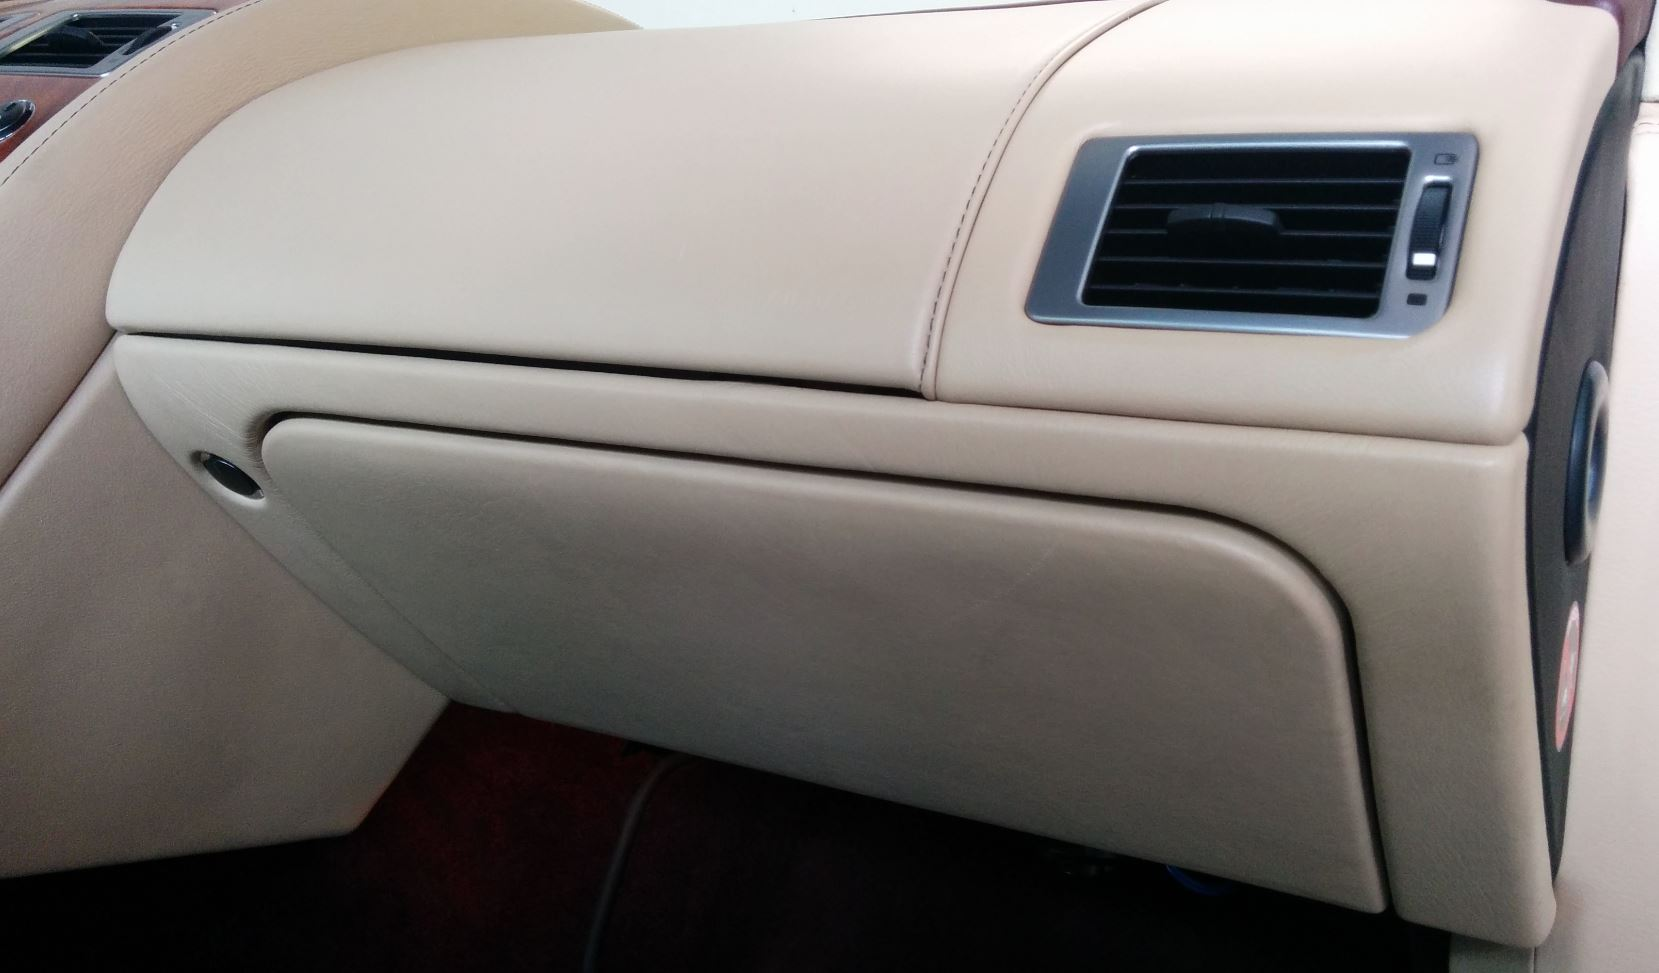 removing the glove box and surrounding panel on an aston martin db9